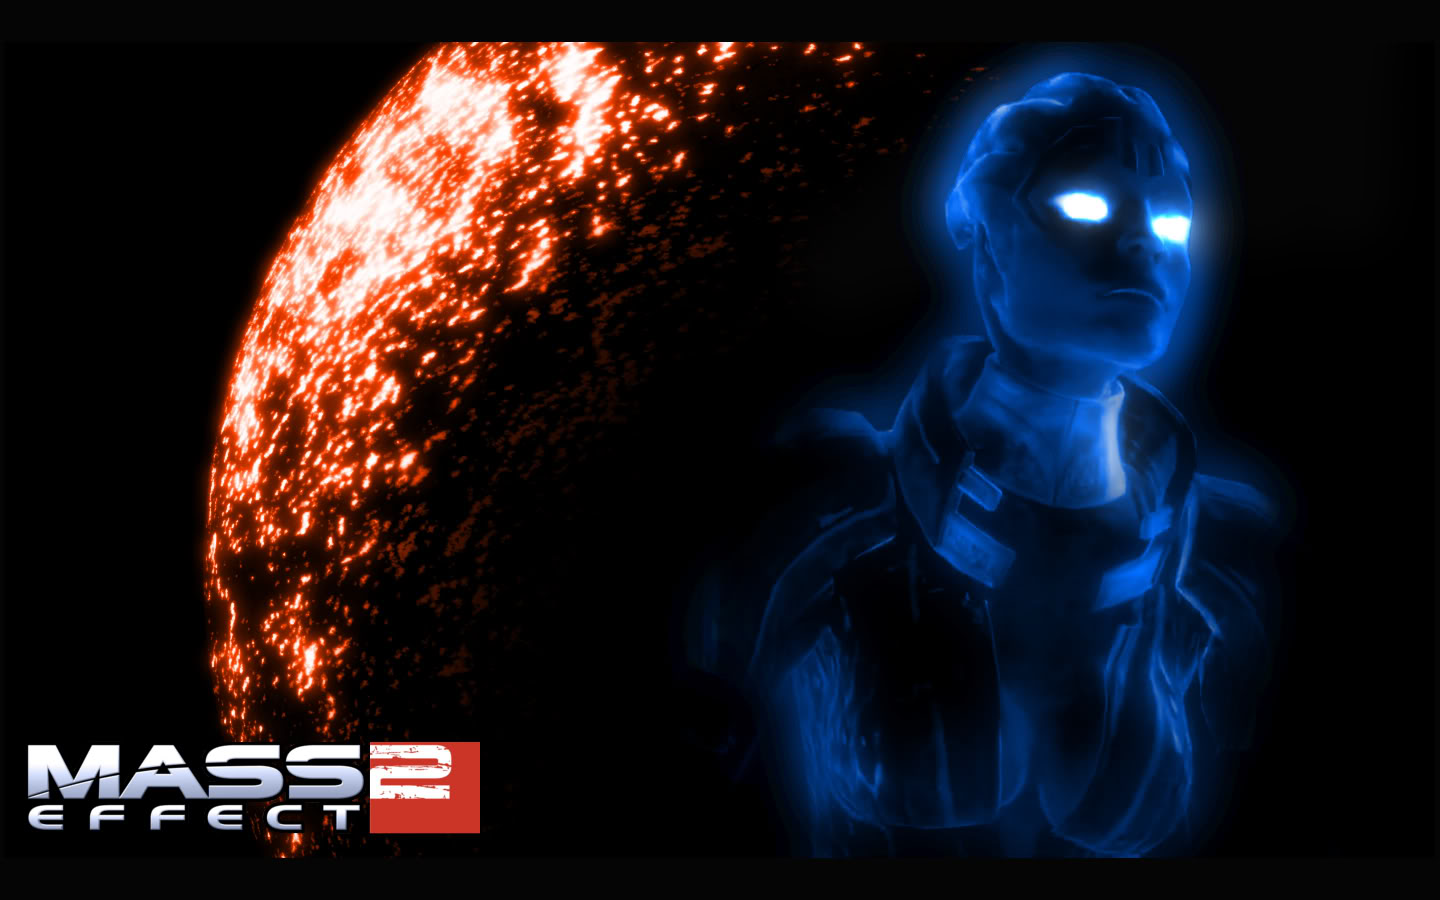 CRYENGINE Mass Effect Wallpapers and general discussion 1440x900